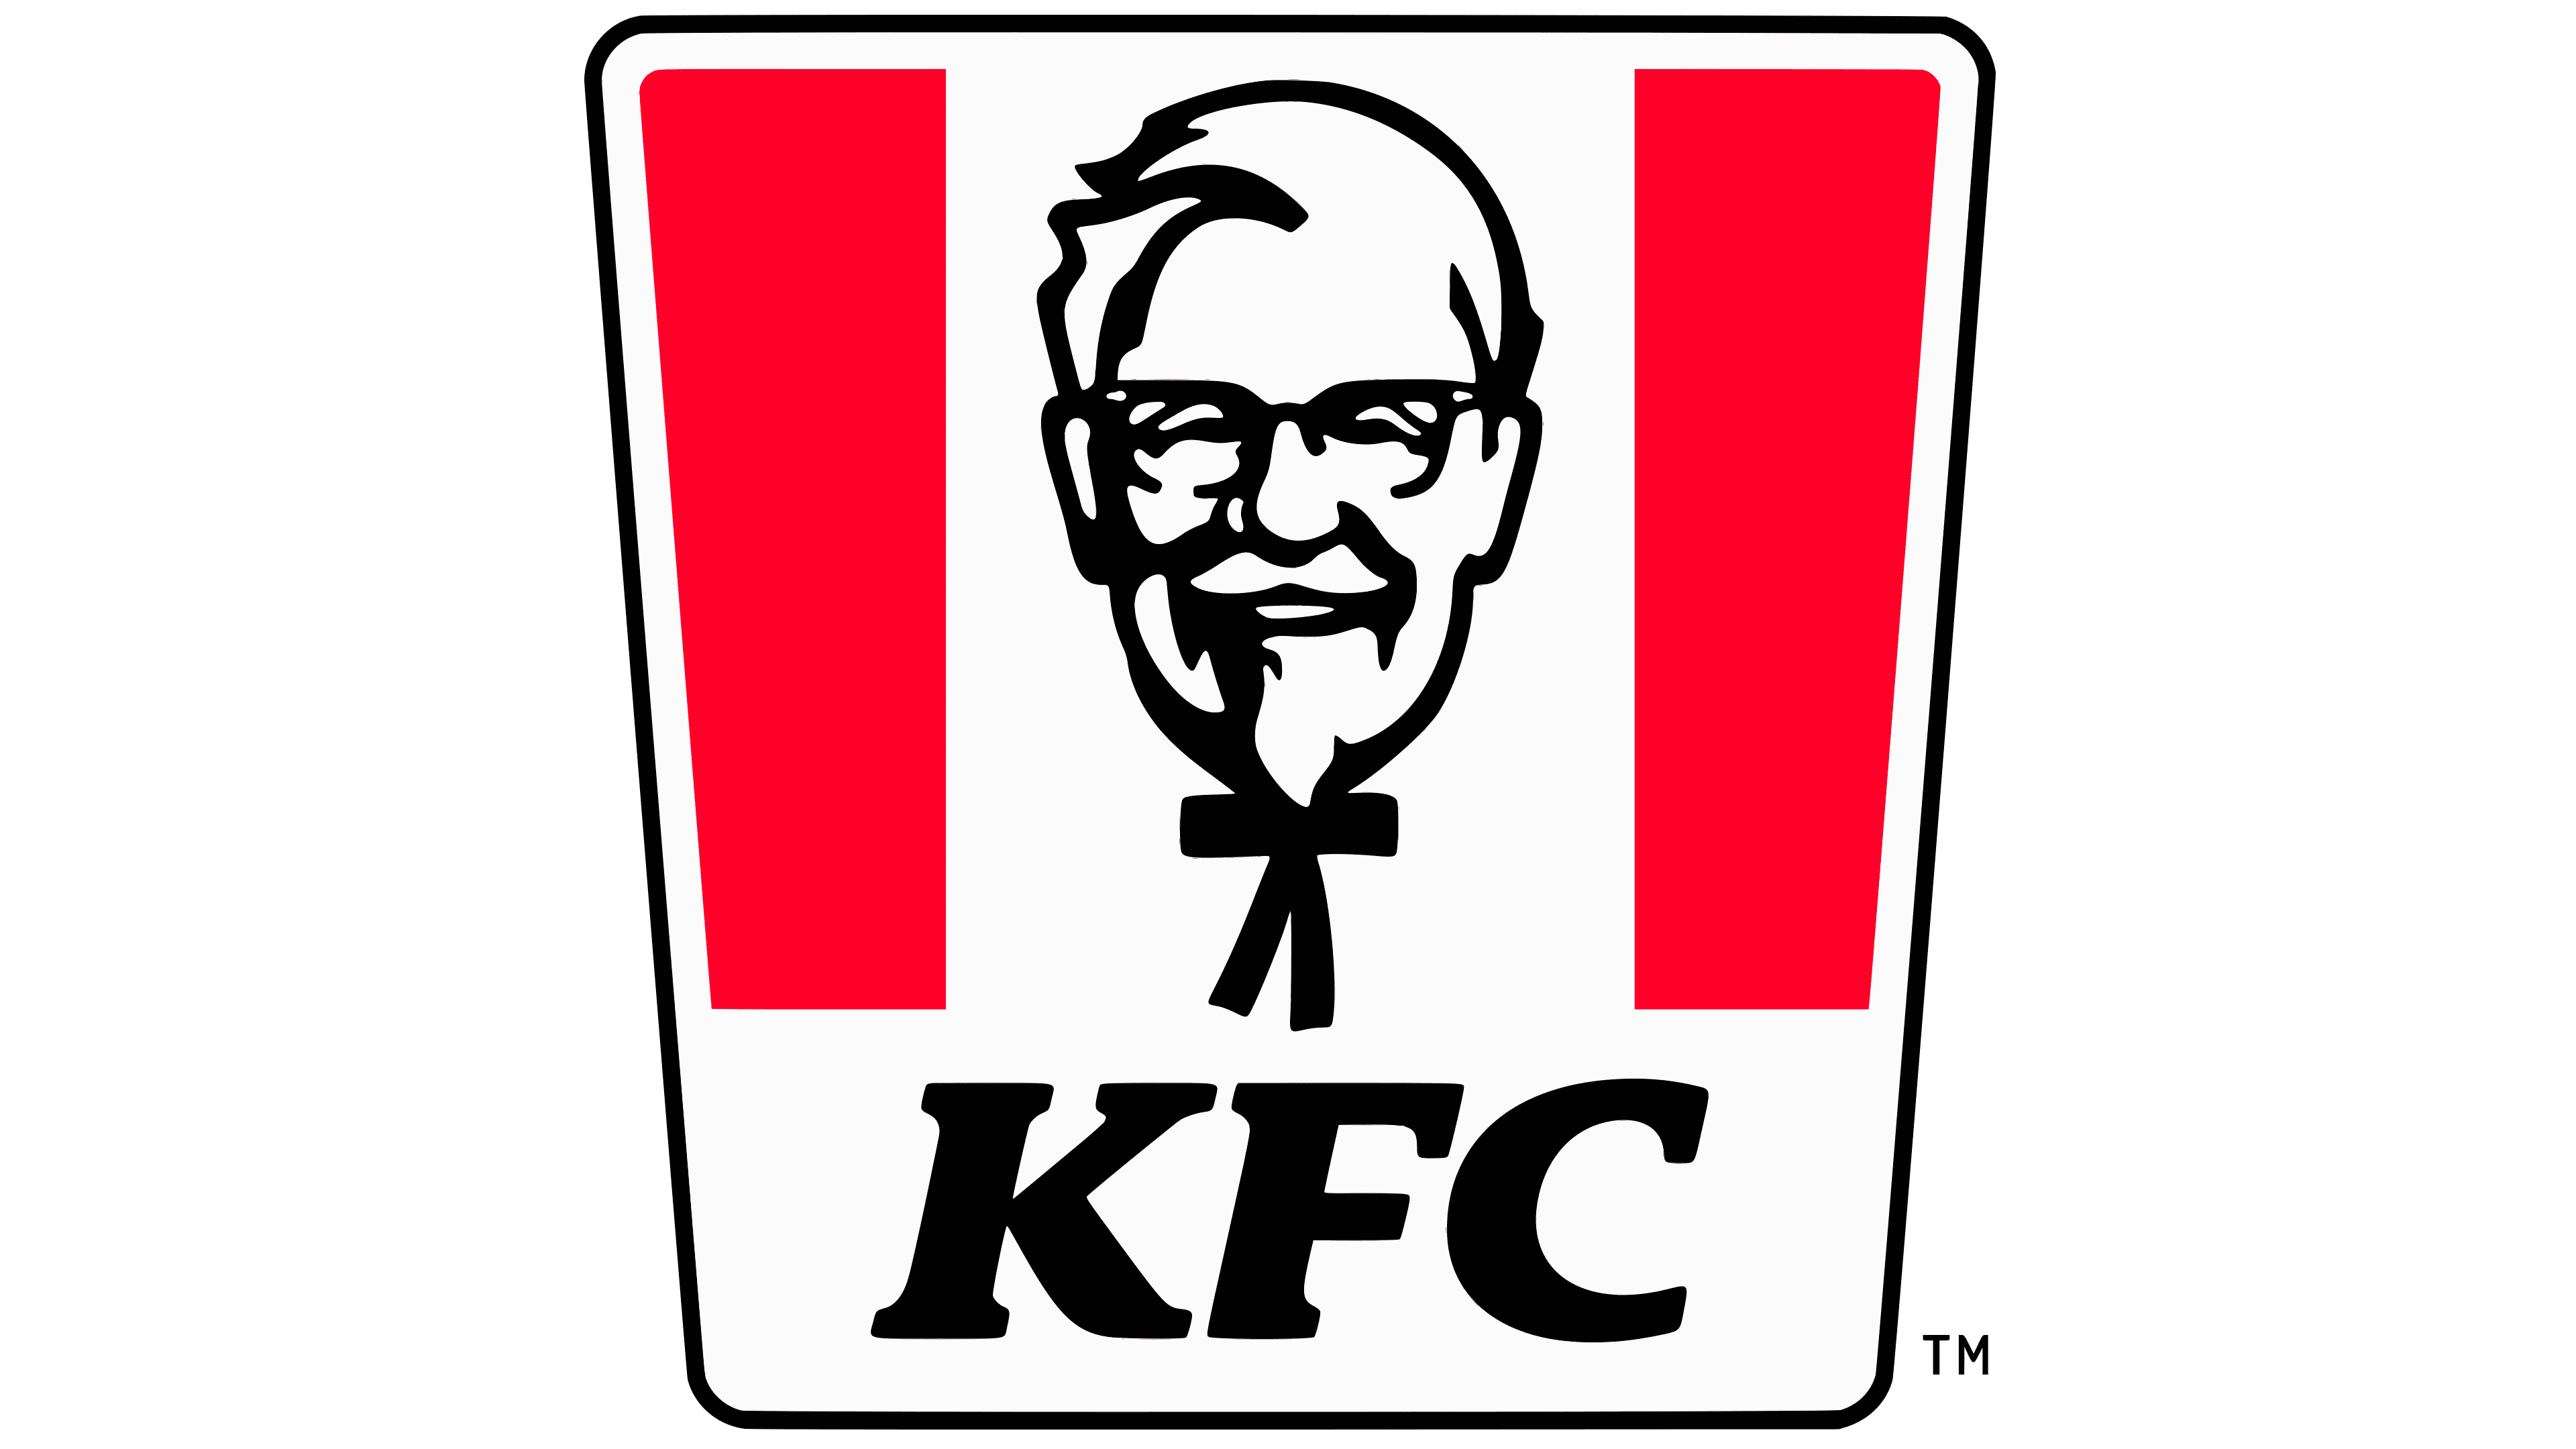 KFC Logo | The most famous brands and company logos in the ...